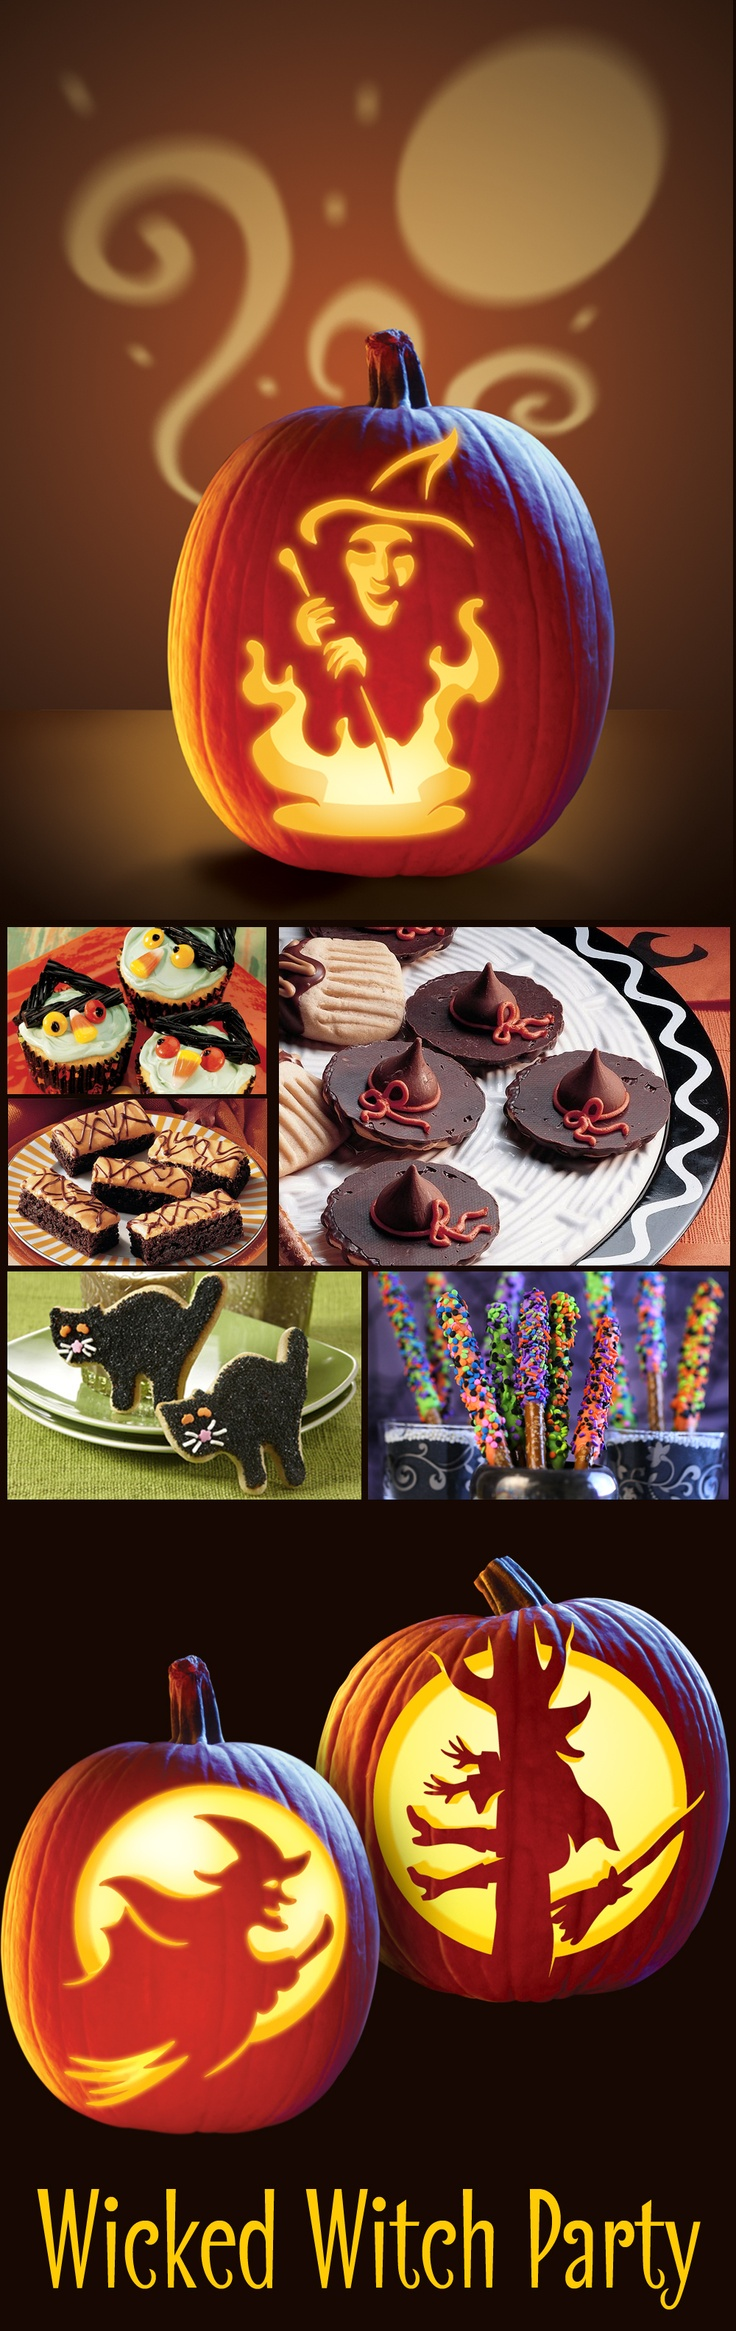 Wicked good fun is sure to be had with a witch themed pumpkin carving party!